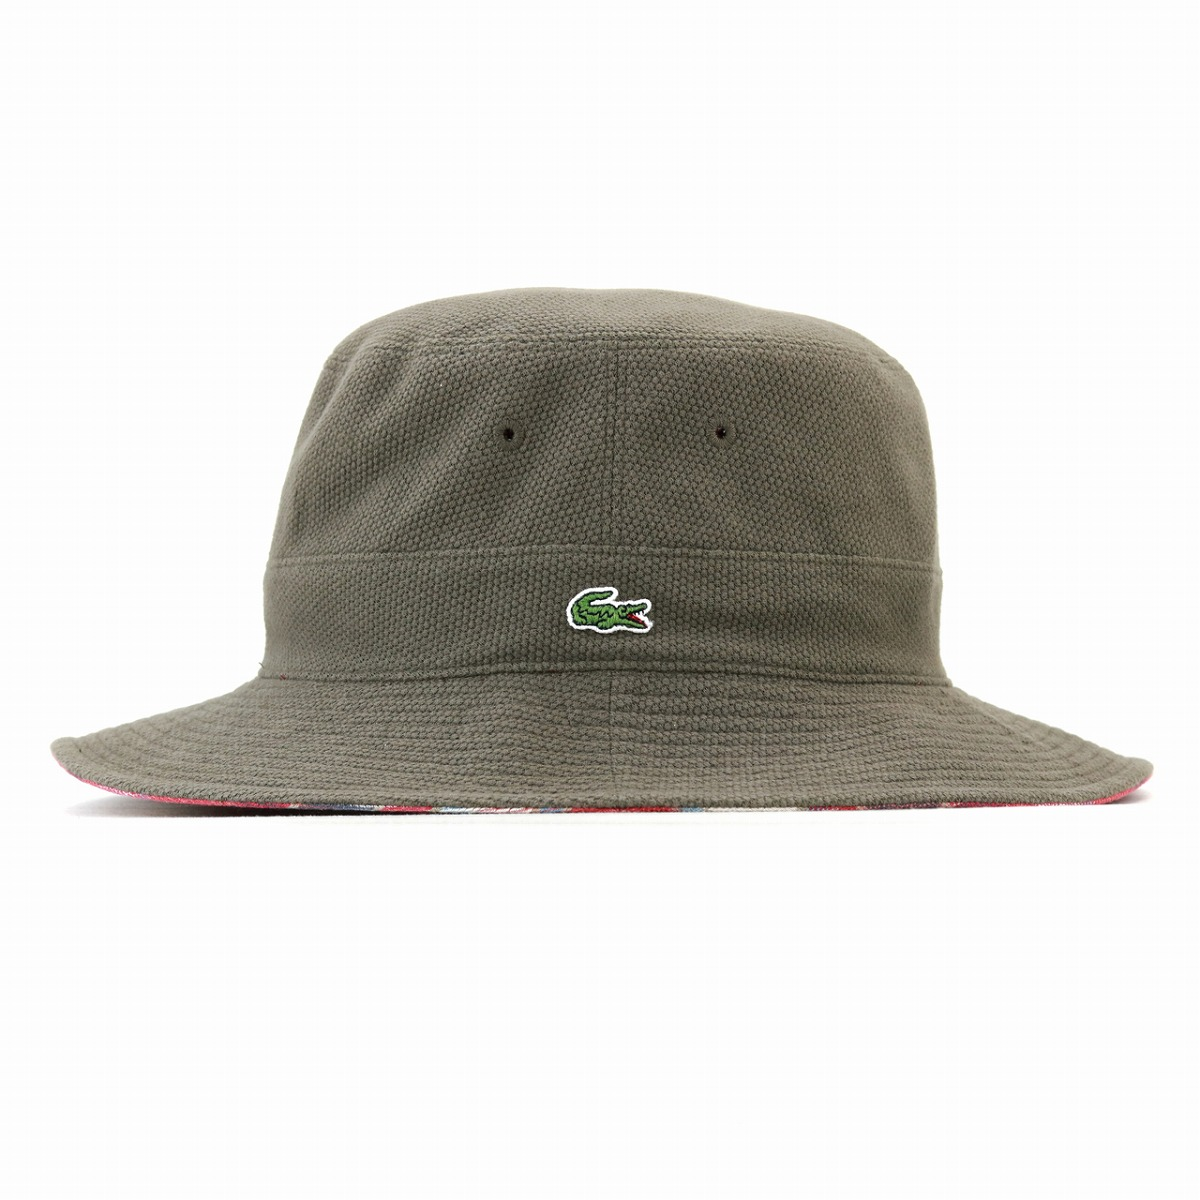 06ad0dfe4c1682 ... Sakha re-hat men Lacoste hat safari lacoste reversible pail hat checked  pattern LACOSTE awning ...